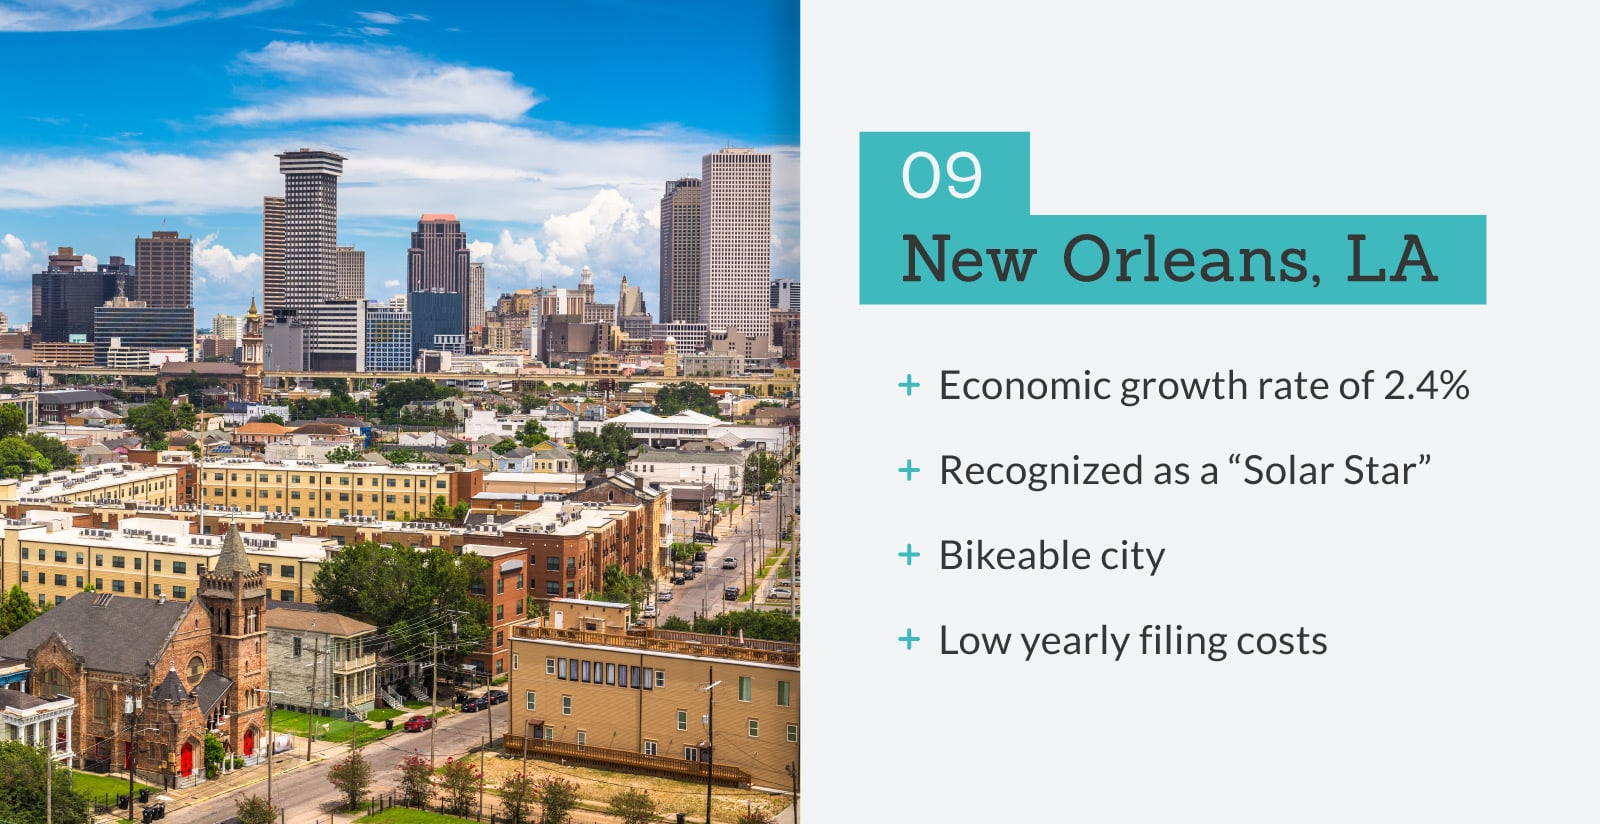 picture of New Orleans, LA with stats.